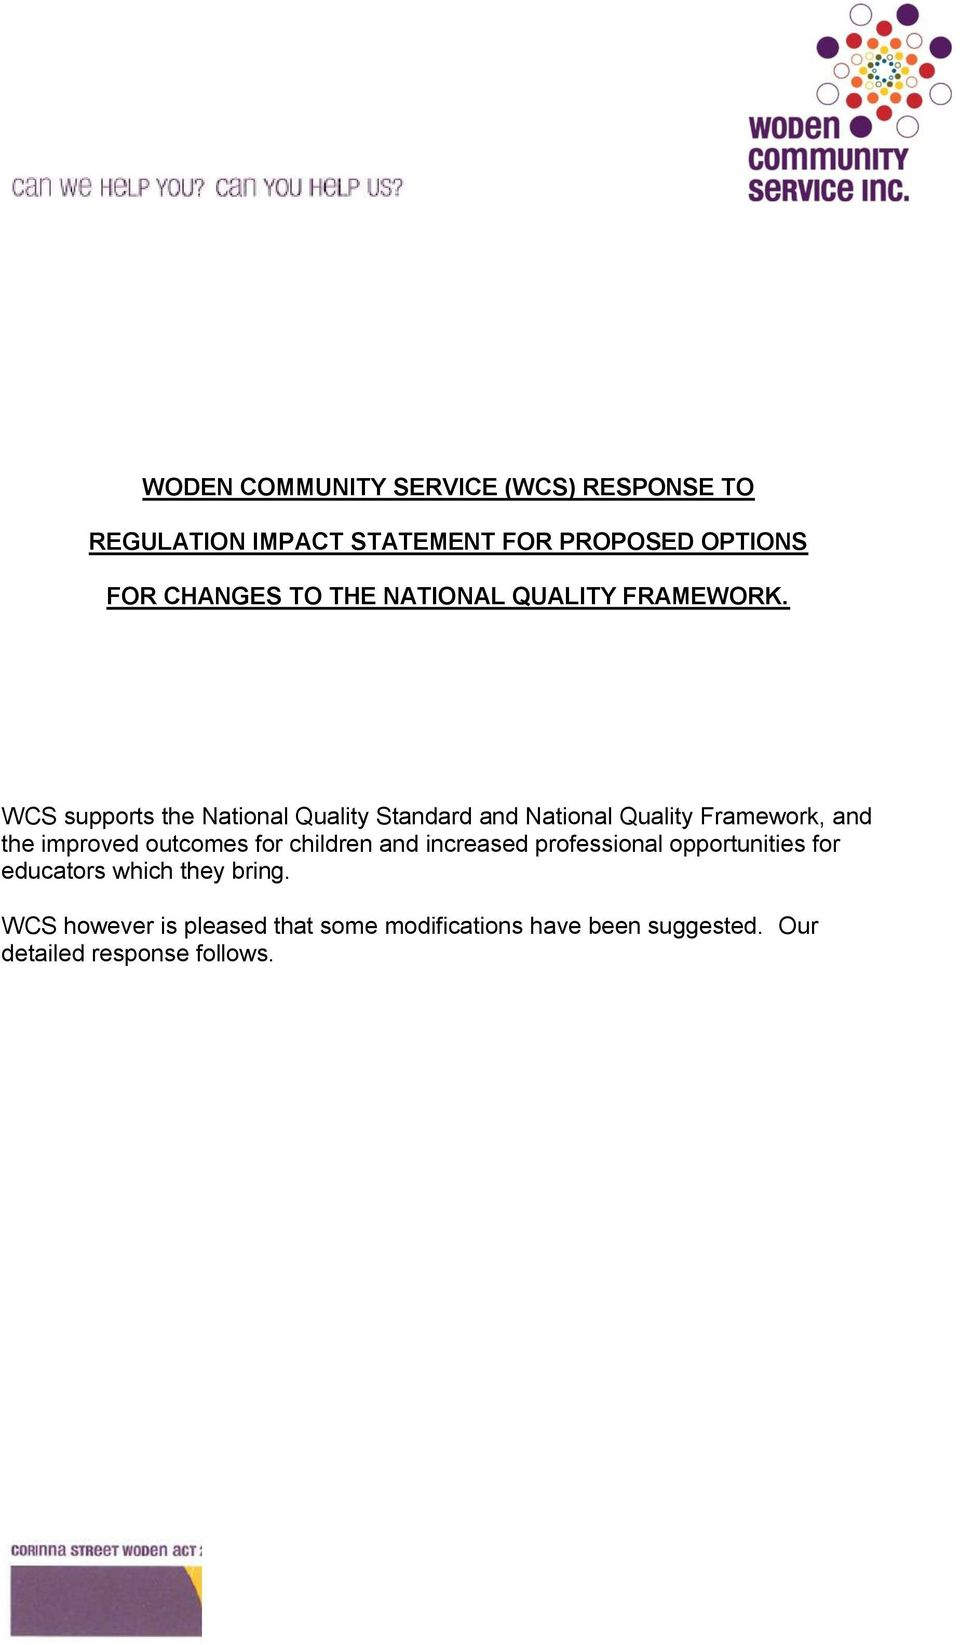 WCS supports the National Quality Standard and National Quality Framework, and the improved outcomes for